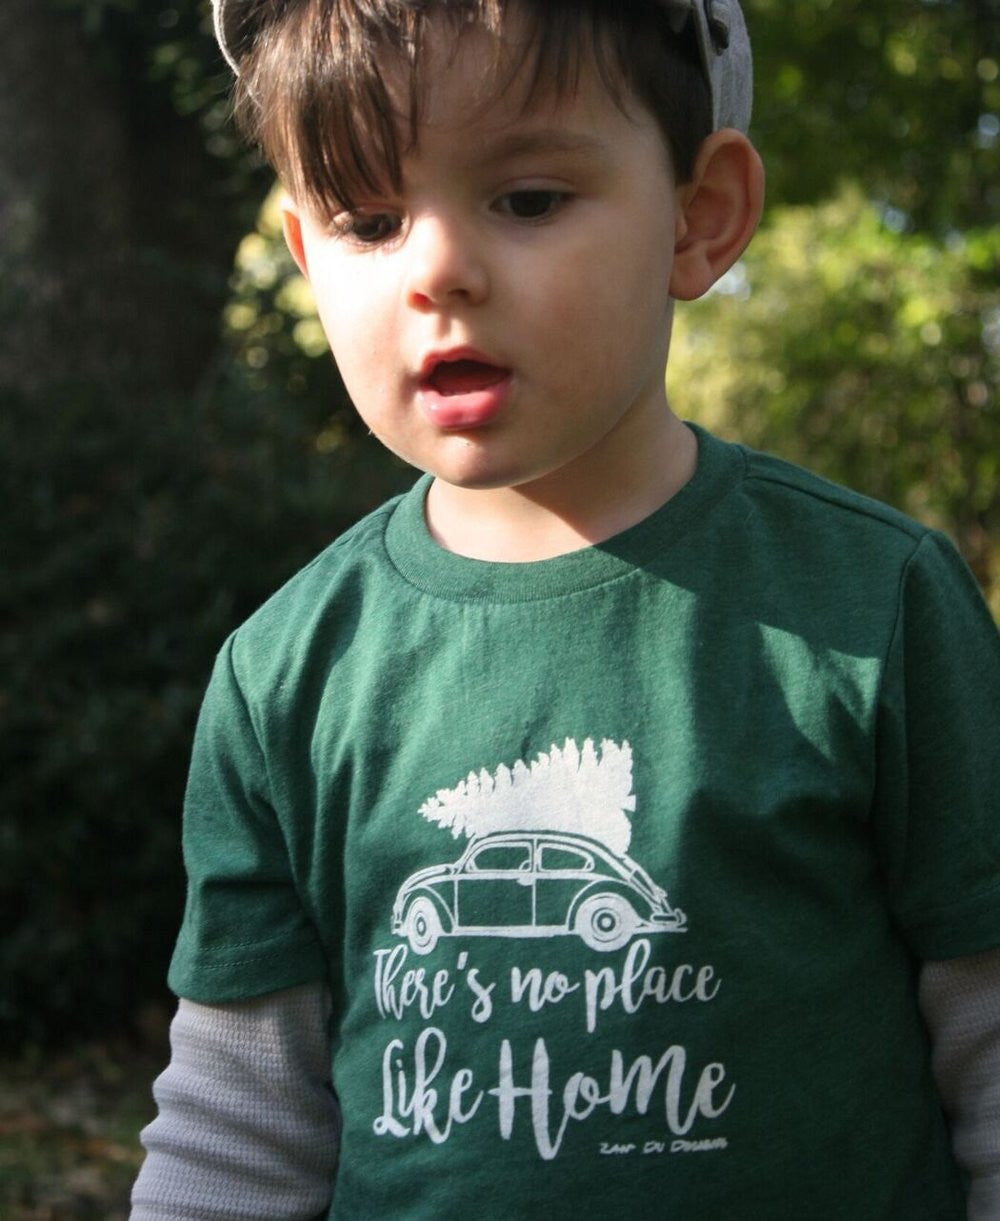 There's No Place Like Home Christmas Tree Youth Tee Holiday